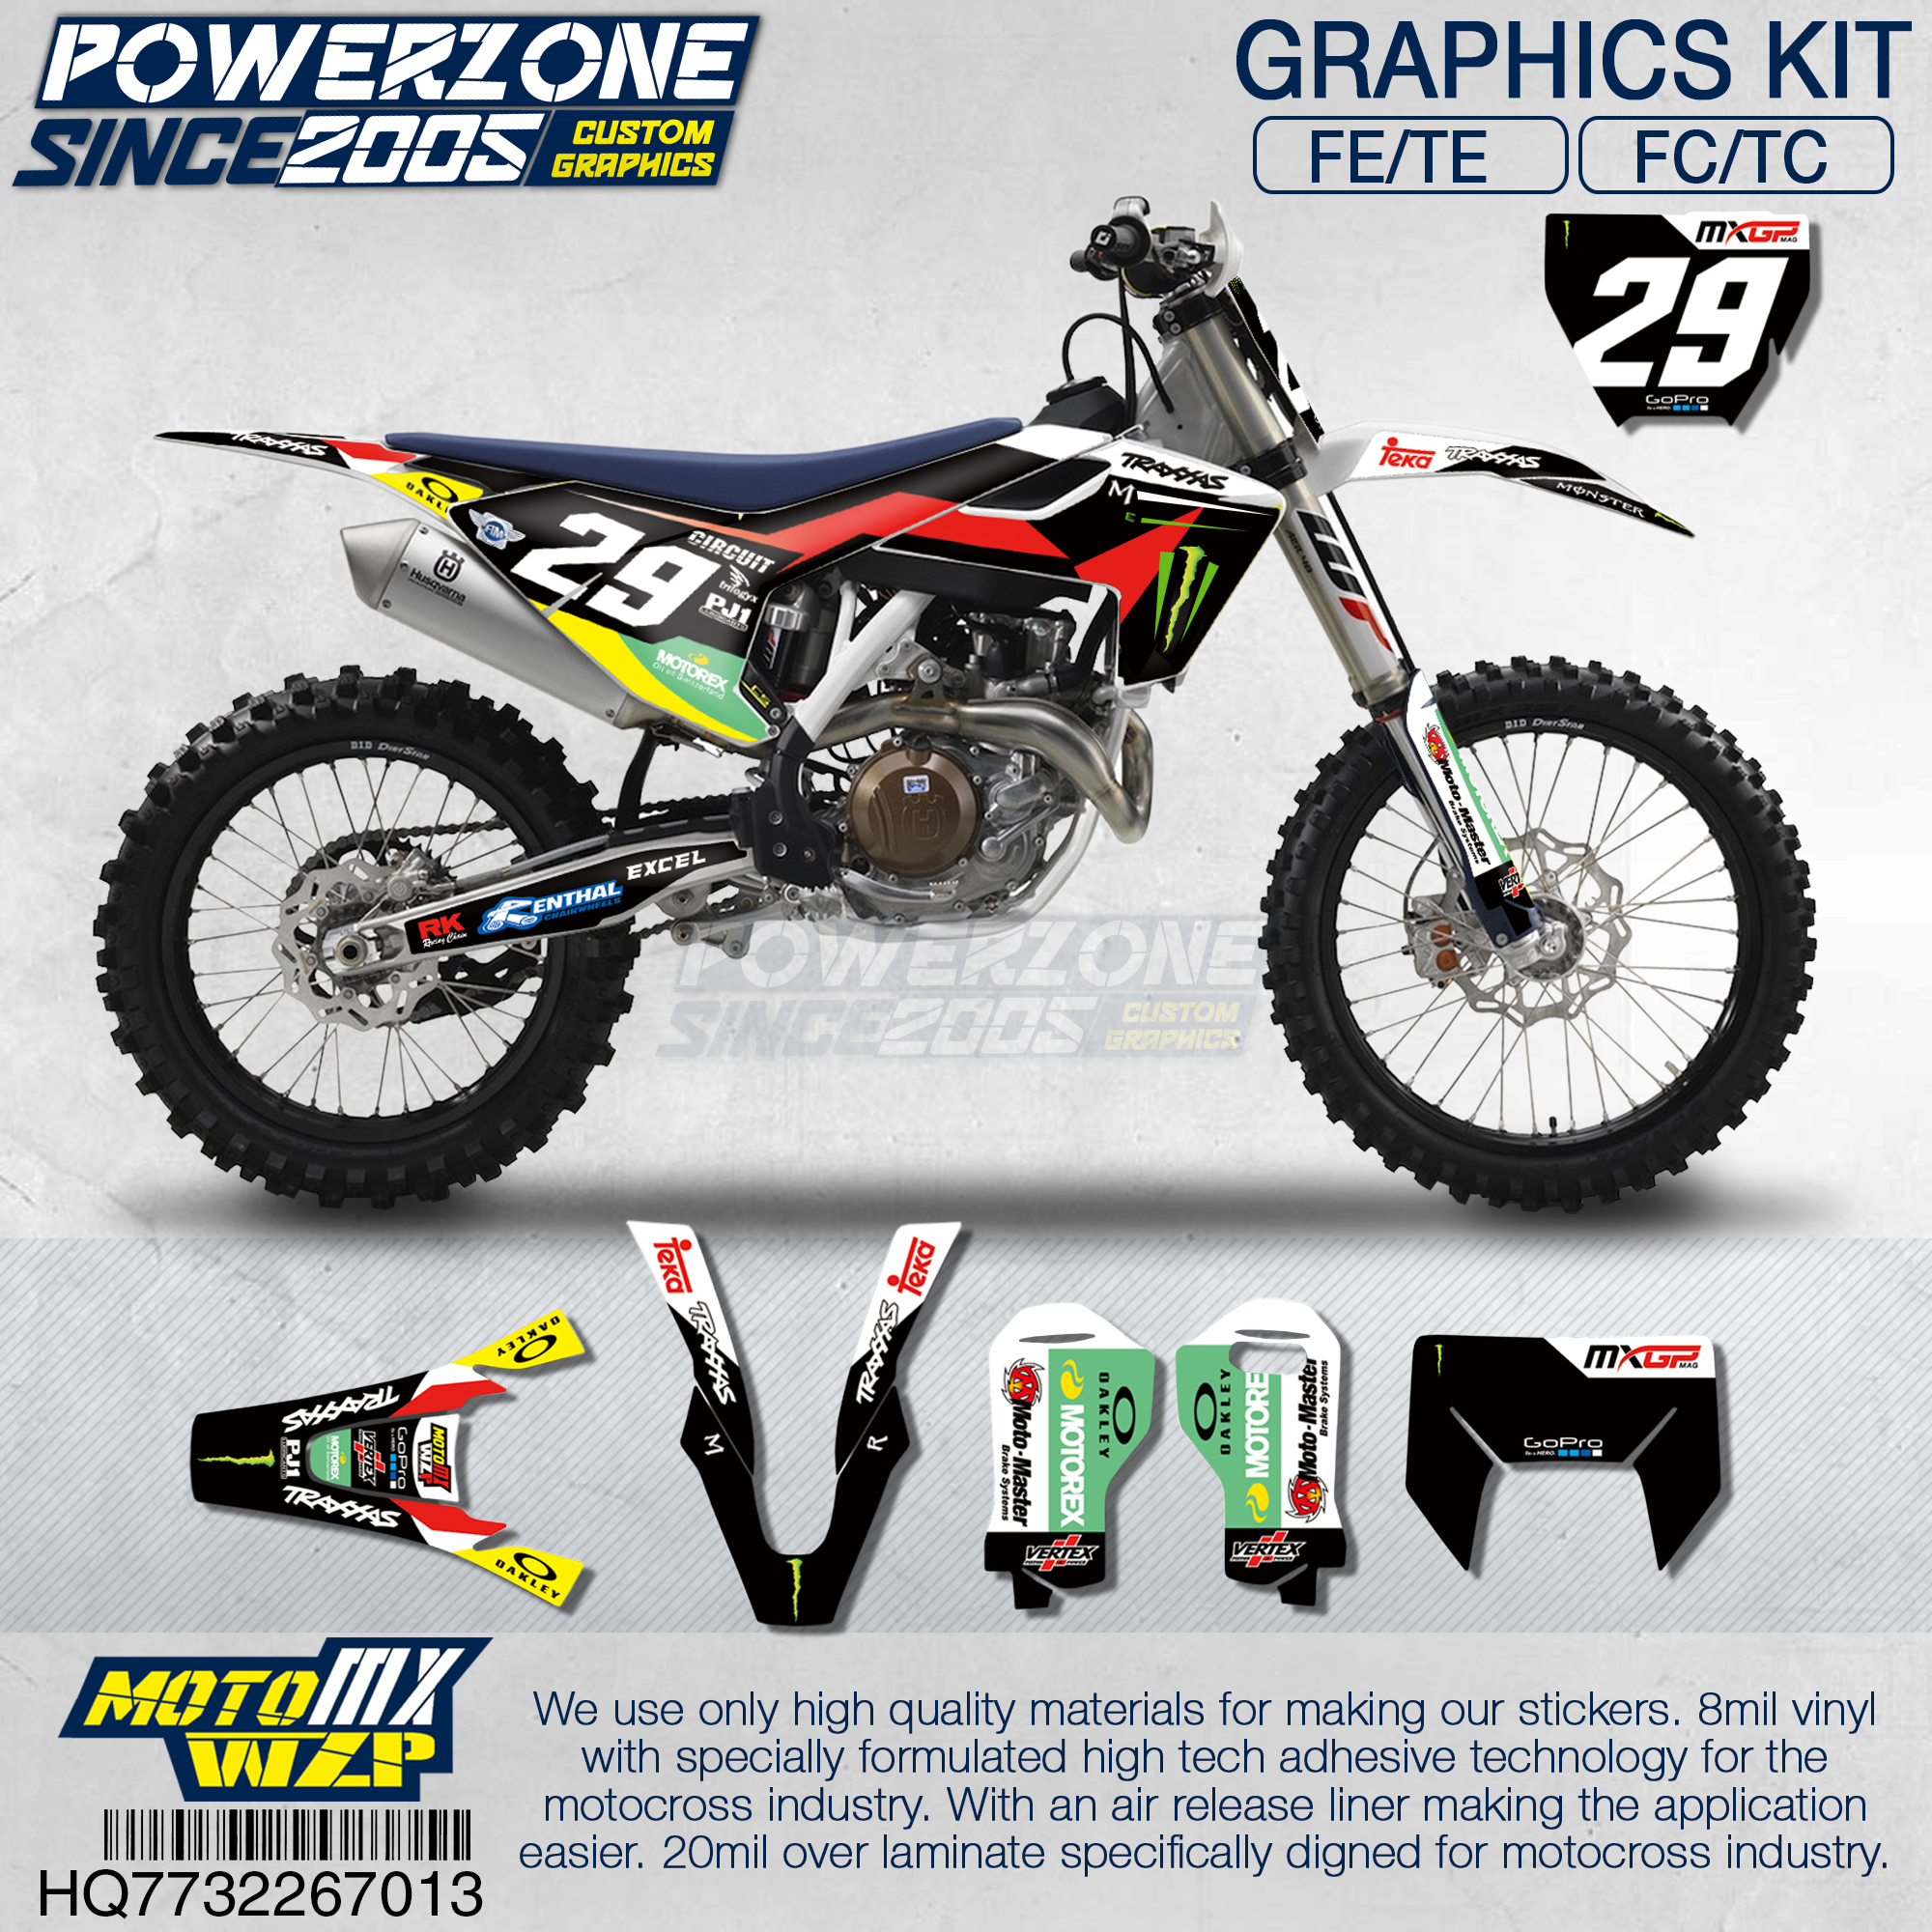 Customized Team Graphics Backgrounds Decals 3M Custom Stickers Kit For Husqvarna 2014 19 FE TE FC